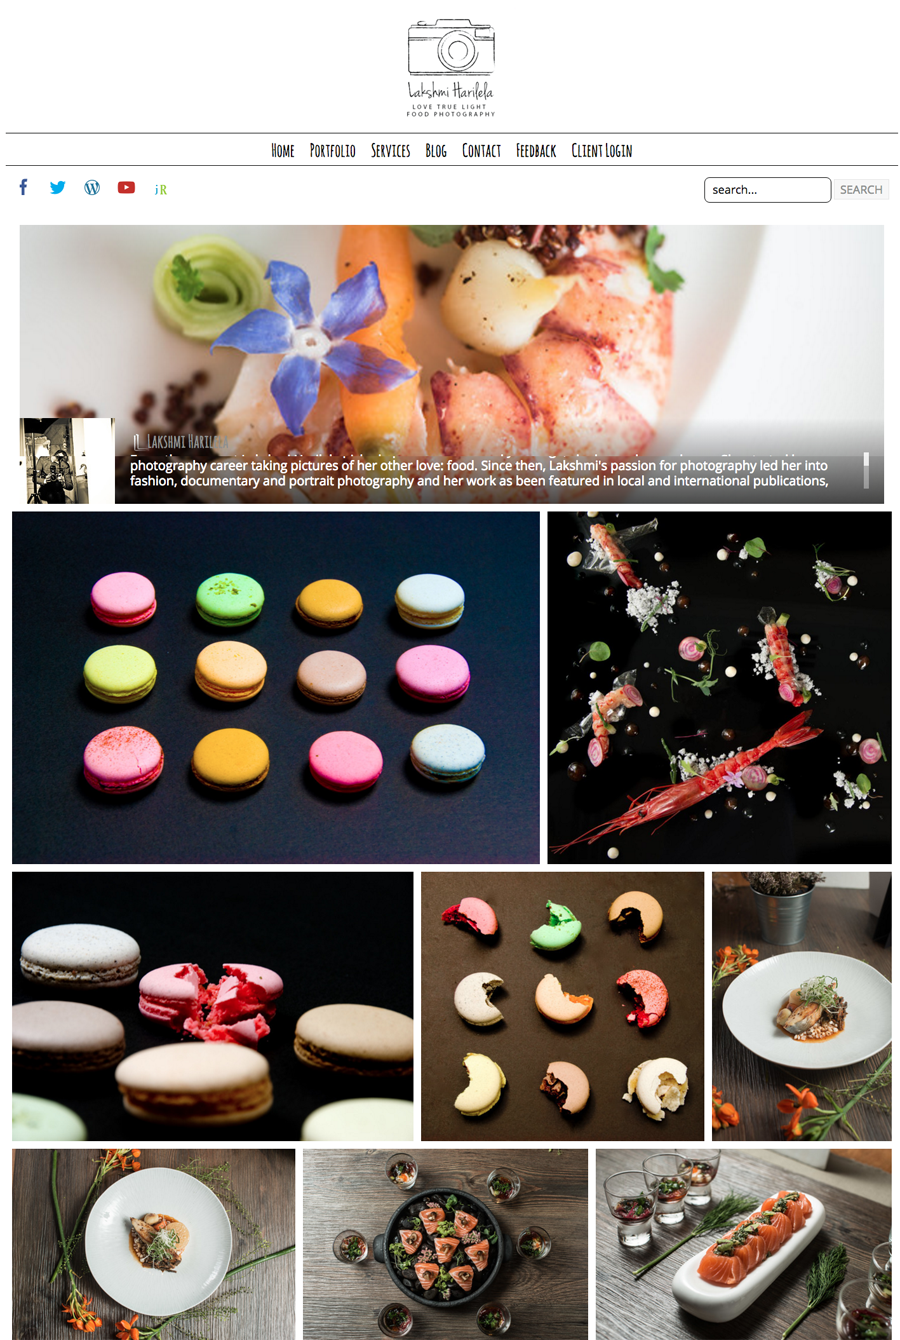 Love True Light Photography from Hong Kong Specializing in Food, Commercial and Portrait Photography